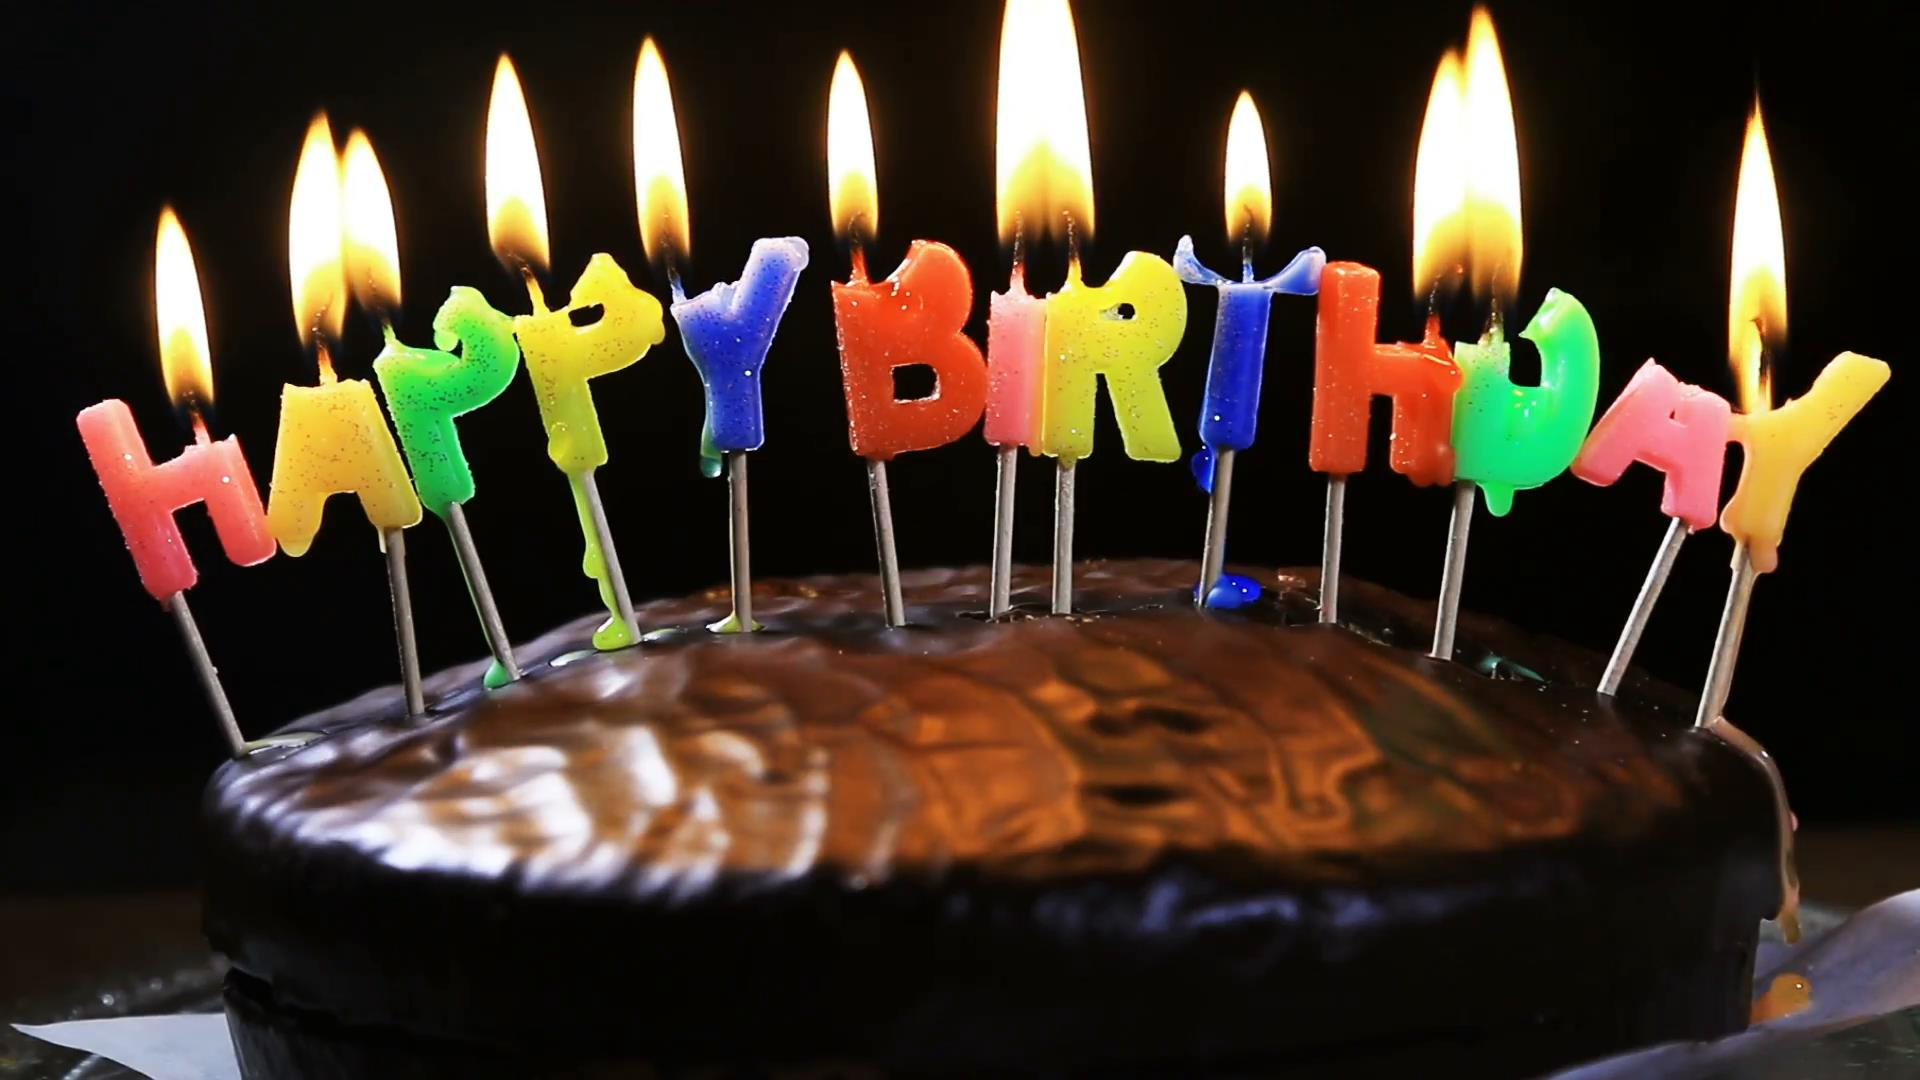 picture of birthday cake and candles ; lighted-candles-on-a-happy-birthday-cake-candles-with-the-words-happy-birthday-on-a-chocolate-cake-hand-lights-a-candle-happy-birthday_rz7gcacv__F0009